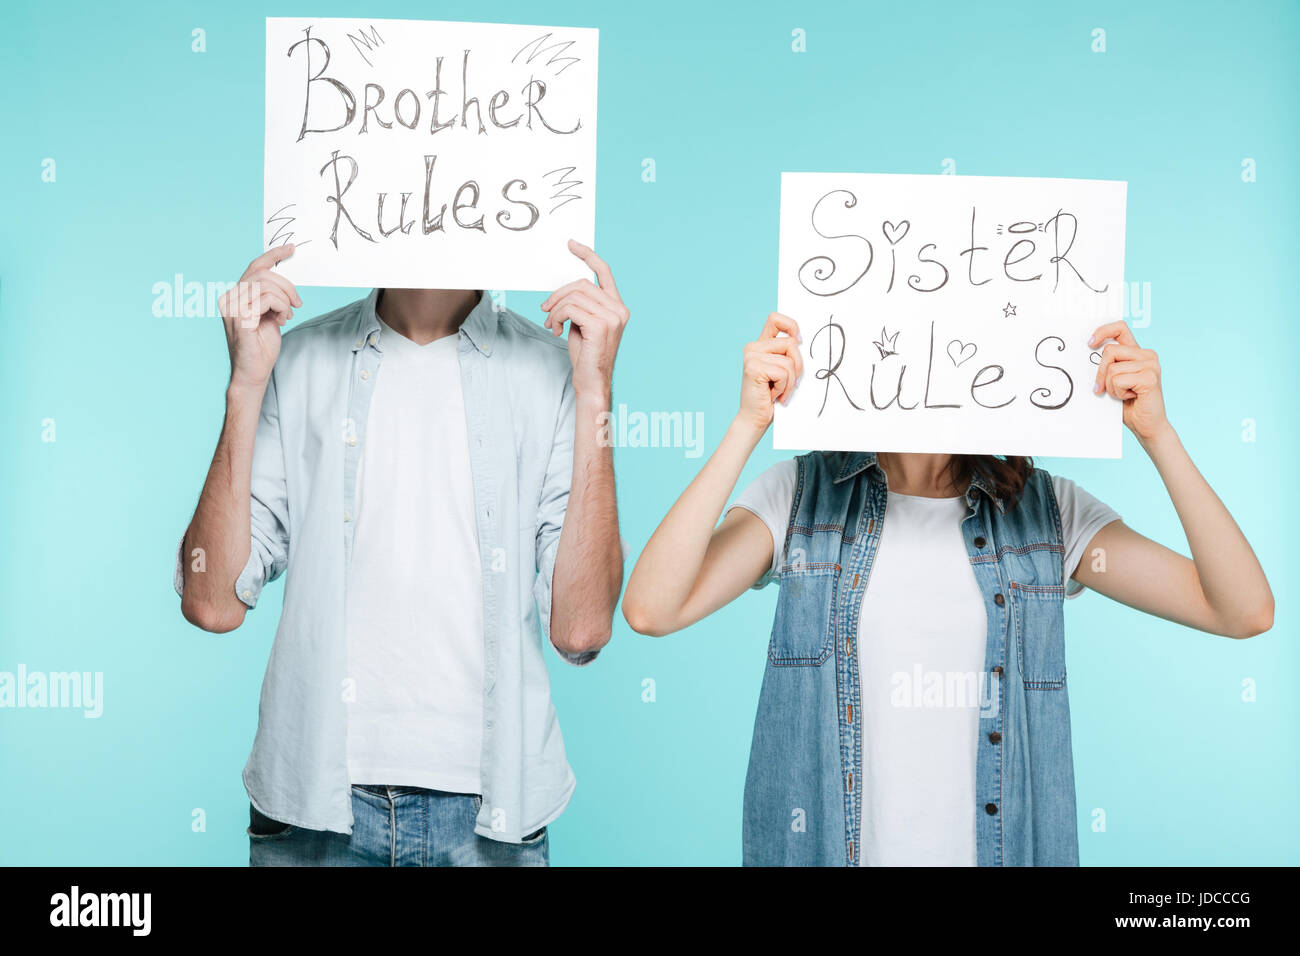 Picture of brother and sister holding funny nameplates over blue background. - Stock Image